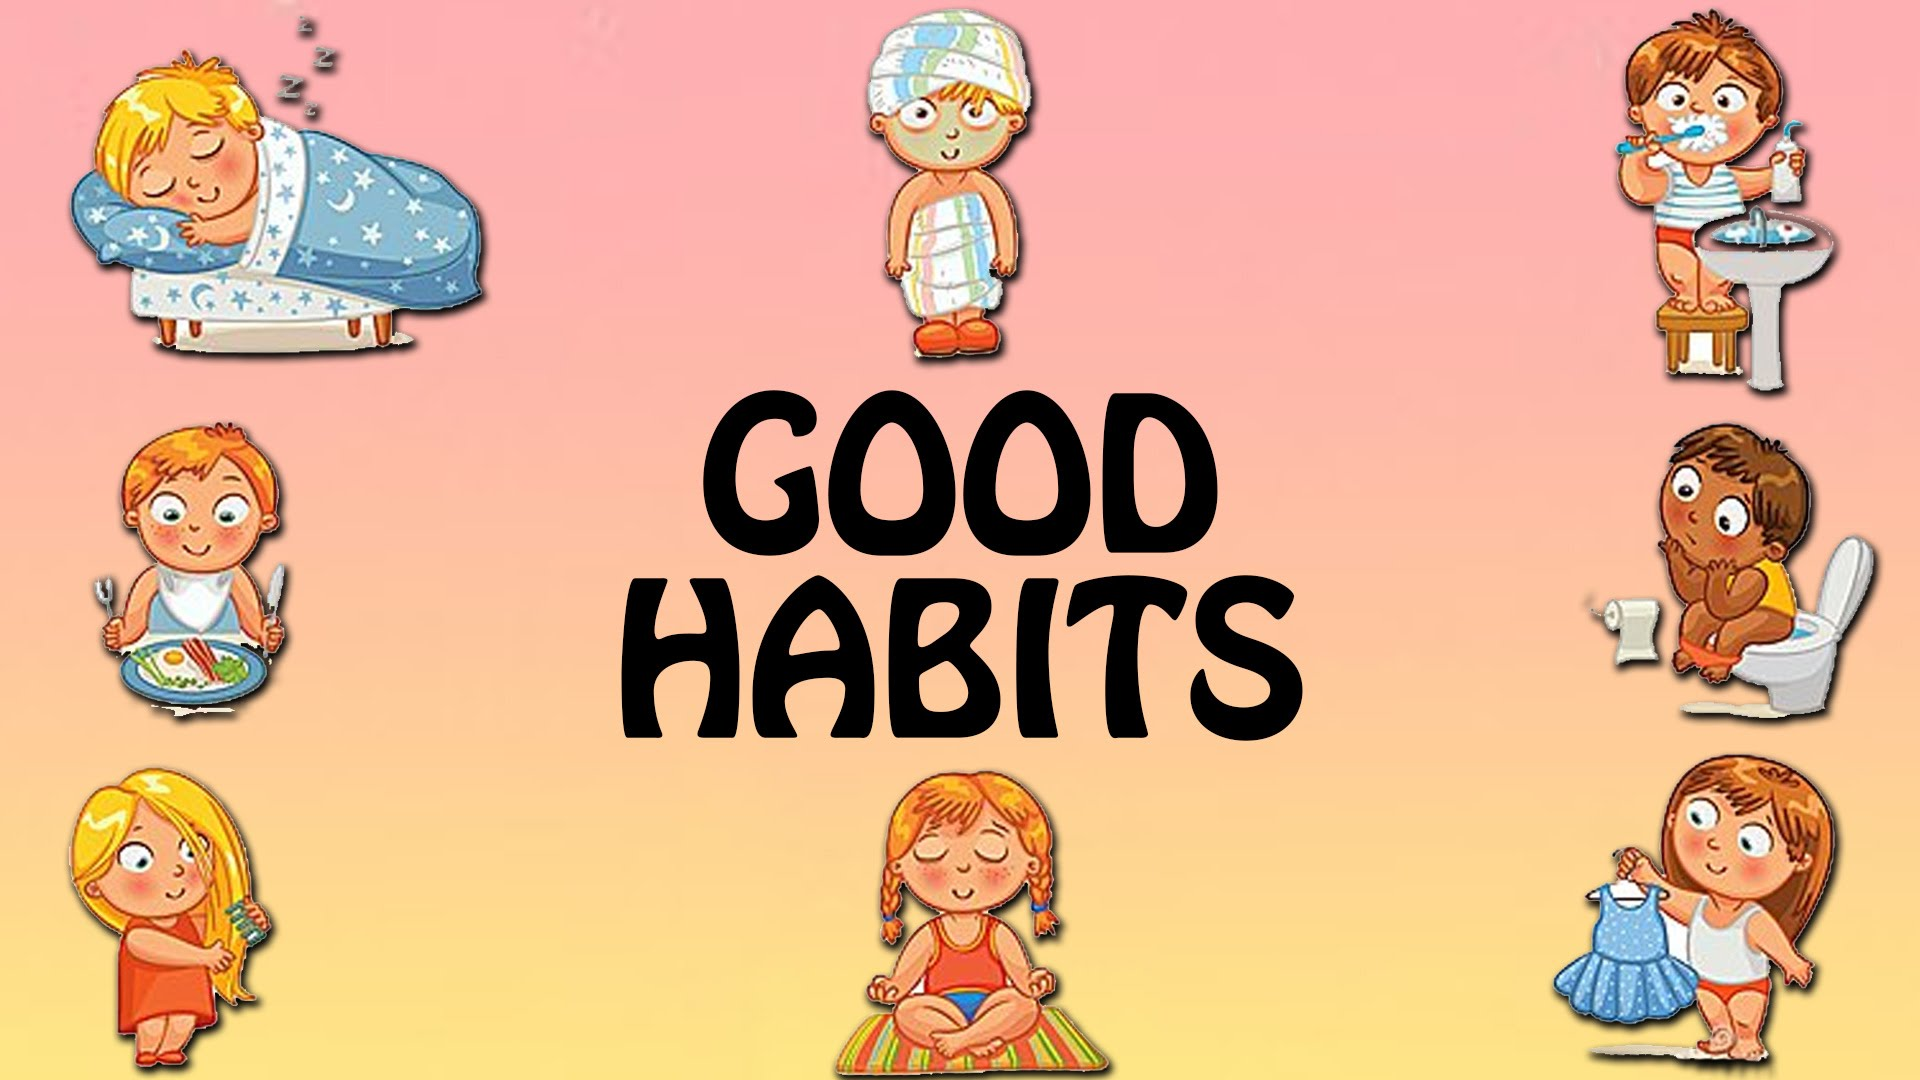 Buy 2nd Activity Book - Good Habit: Good Habits (Kid's Activity Books) Book  Online at Low Prices in India   2nd Activity Book - Good Habit: Good Habits  (Kid's Activity Books) Reviews